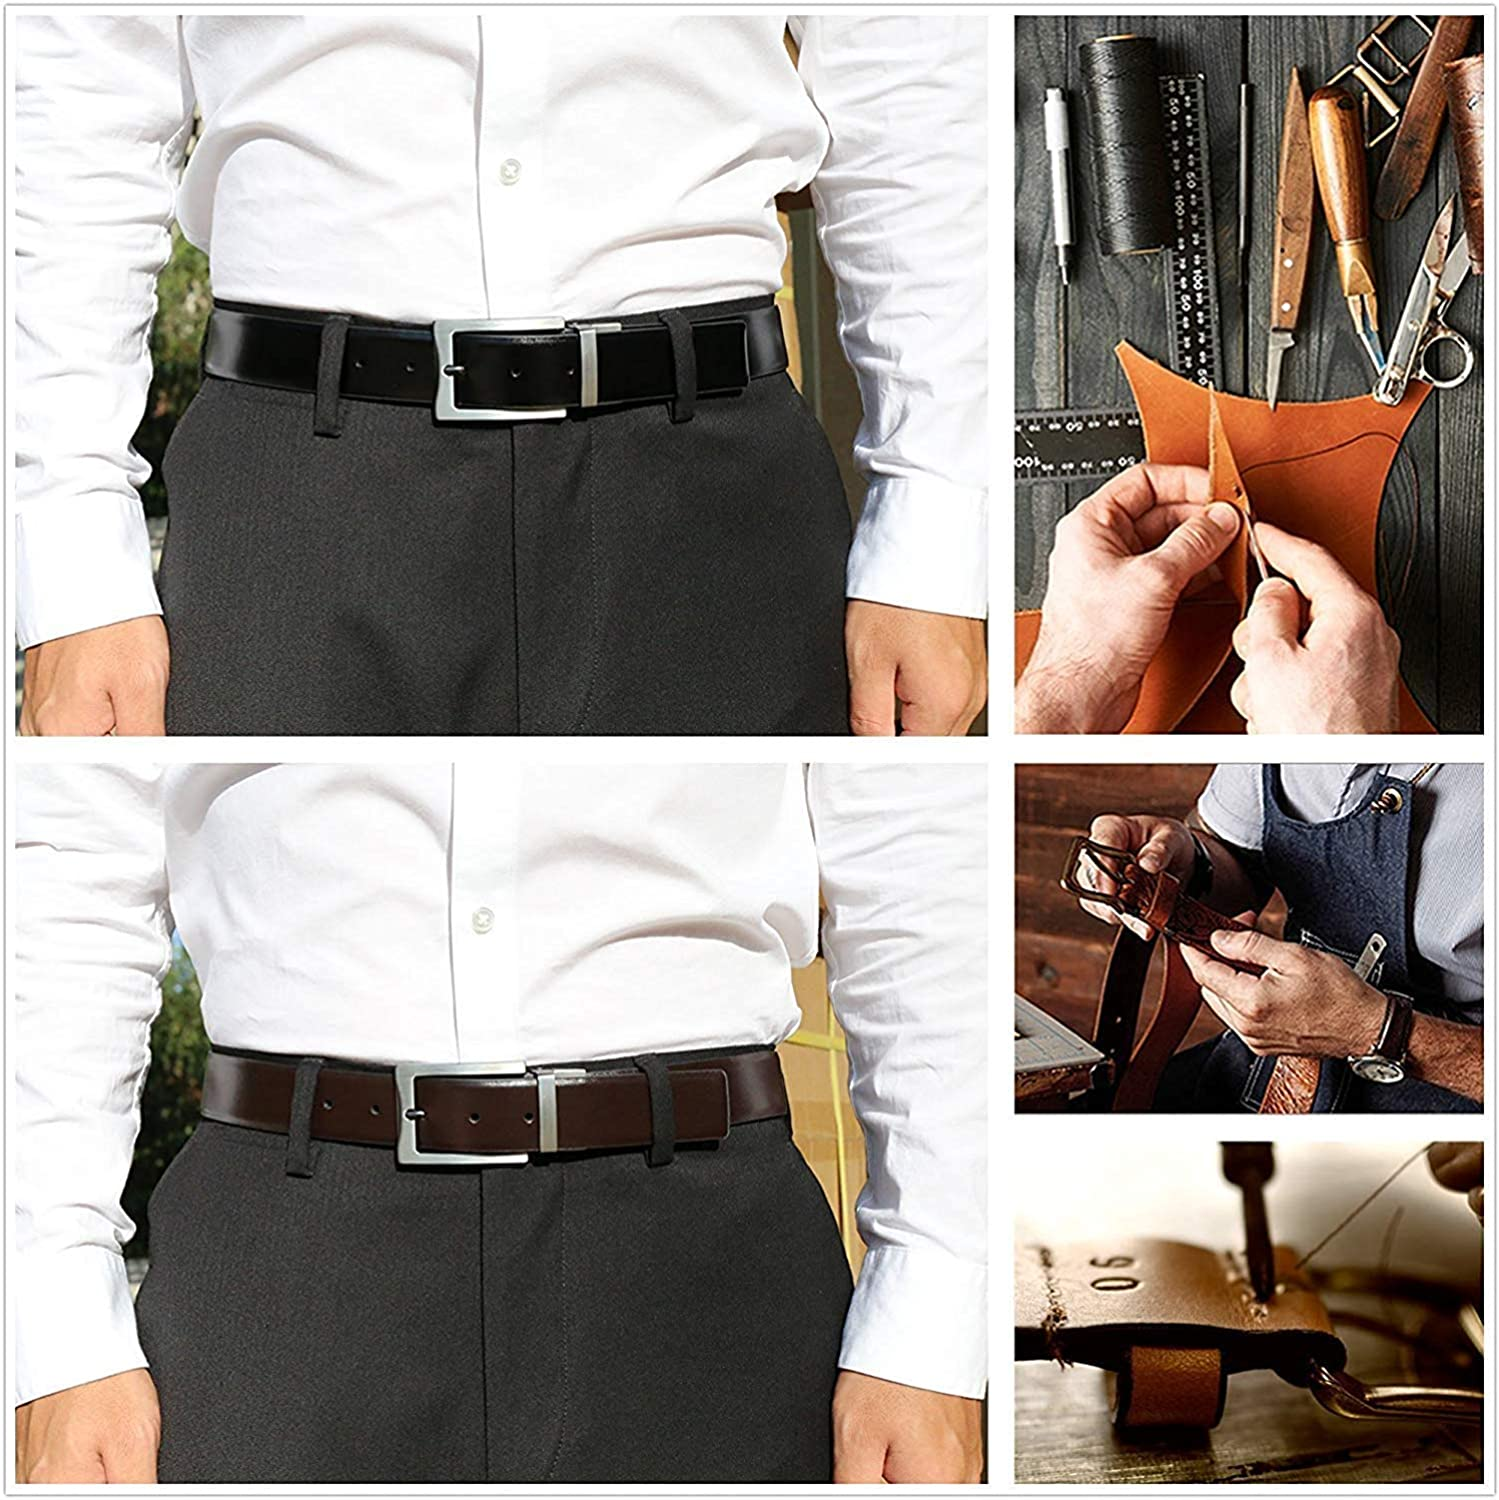 Mens Dress Belt Genuine Leather Reversible Rotated Buckle with 1.25 Wide Strap Black//Brown